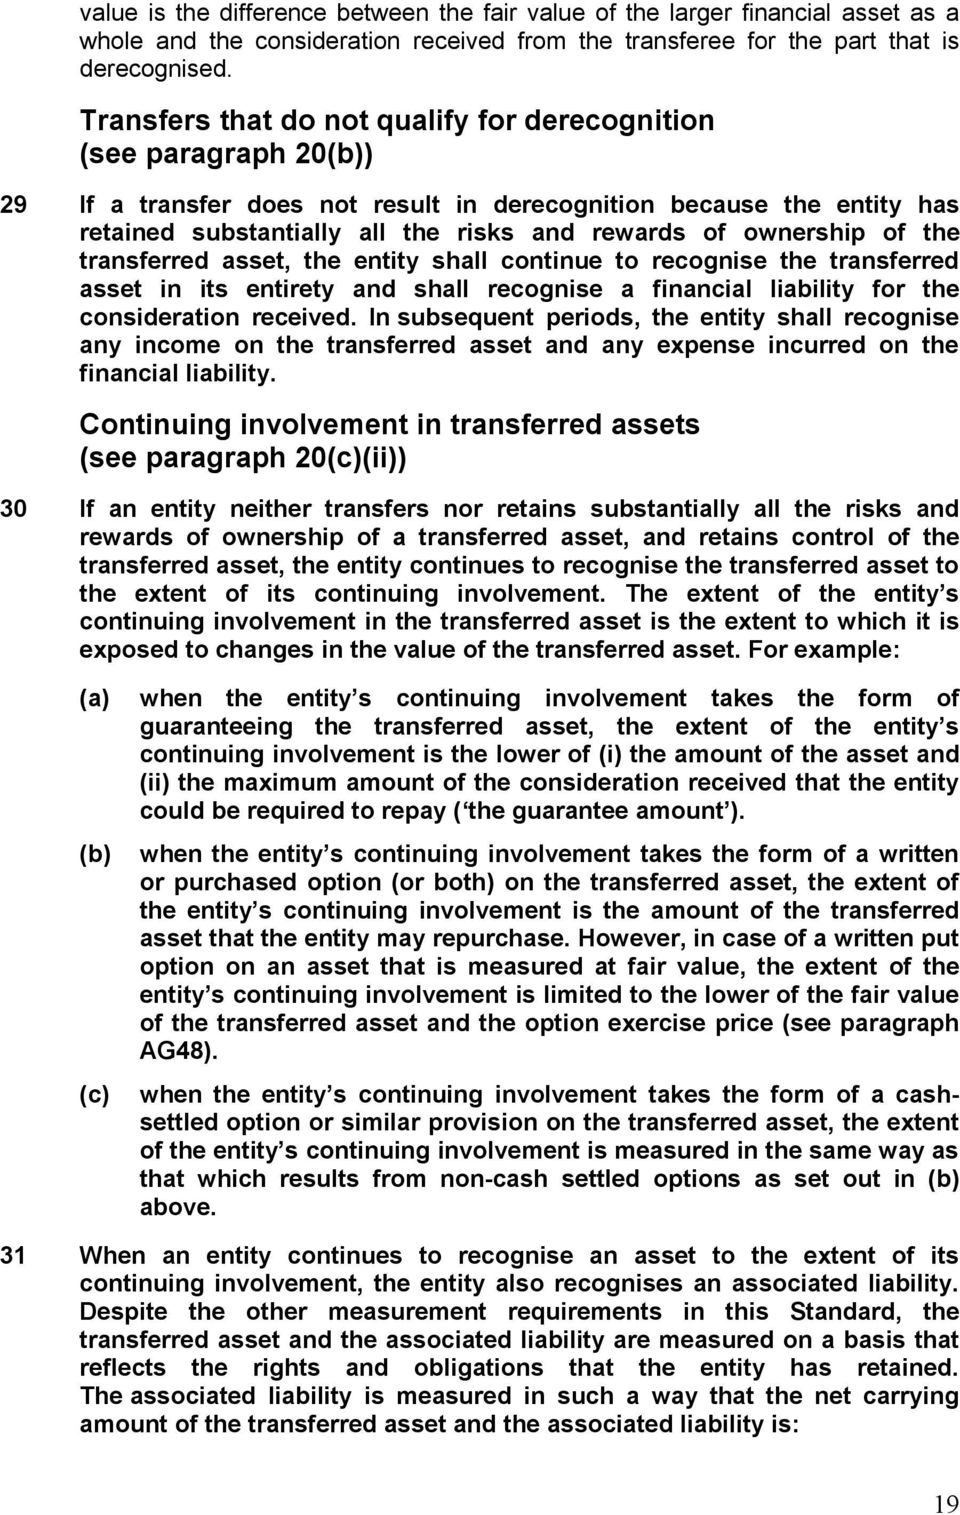 ownership of the transferred asset, the entity shall continue to recognise the transferred asset in its entirety and shall recognise a financial liability for the consideration received.